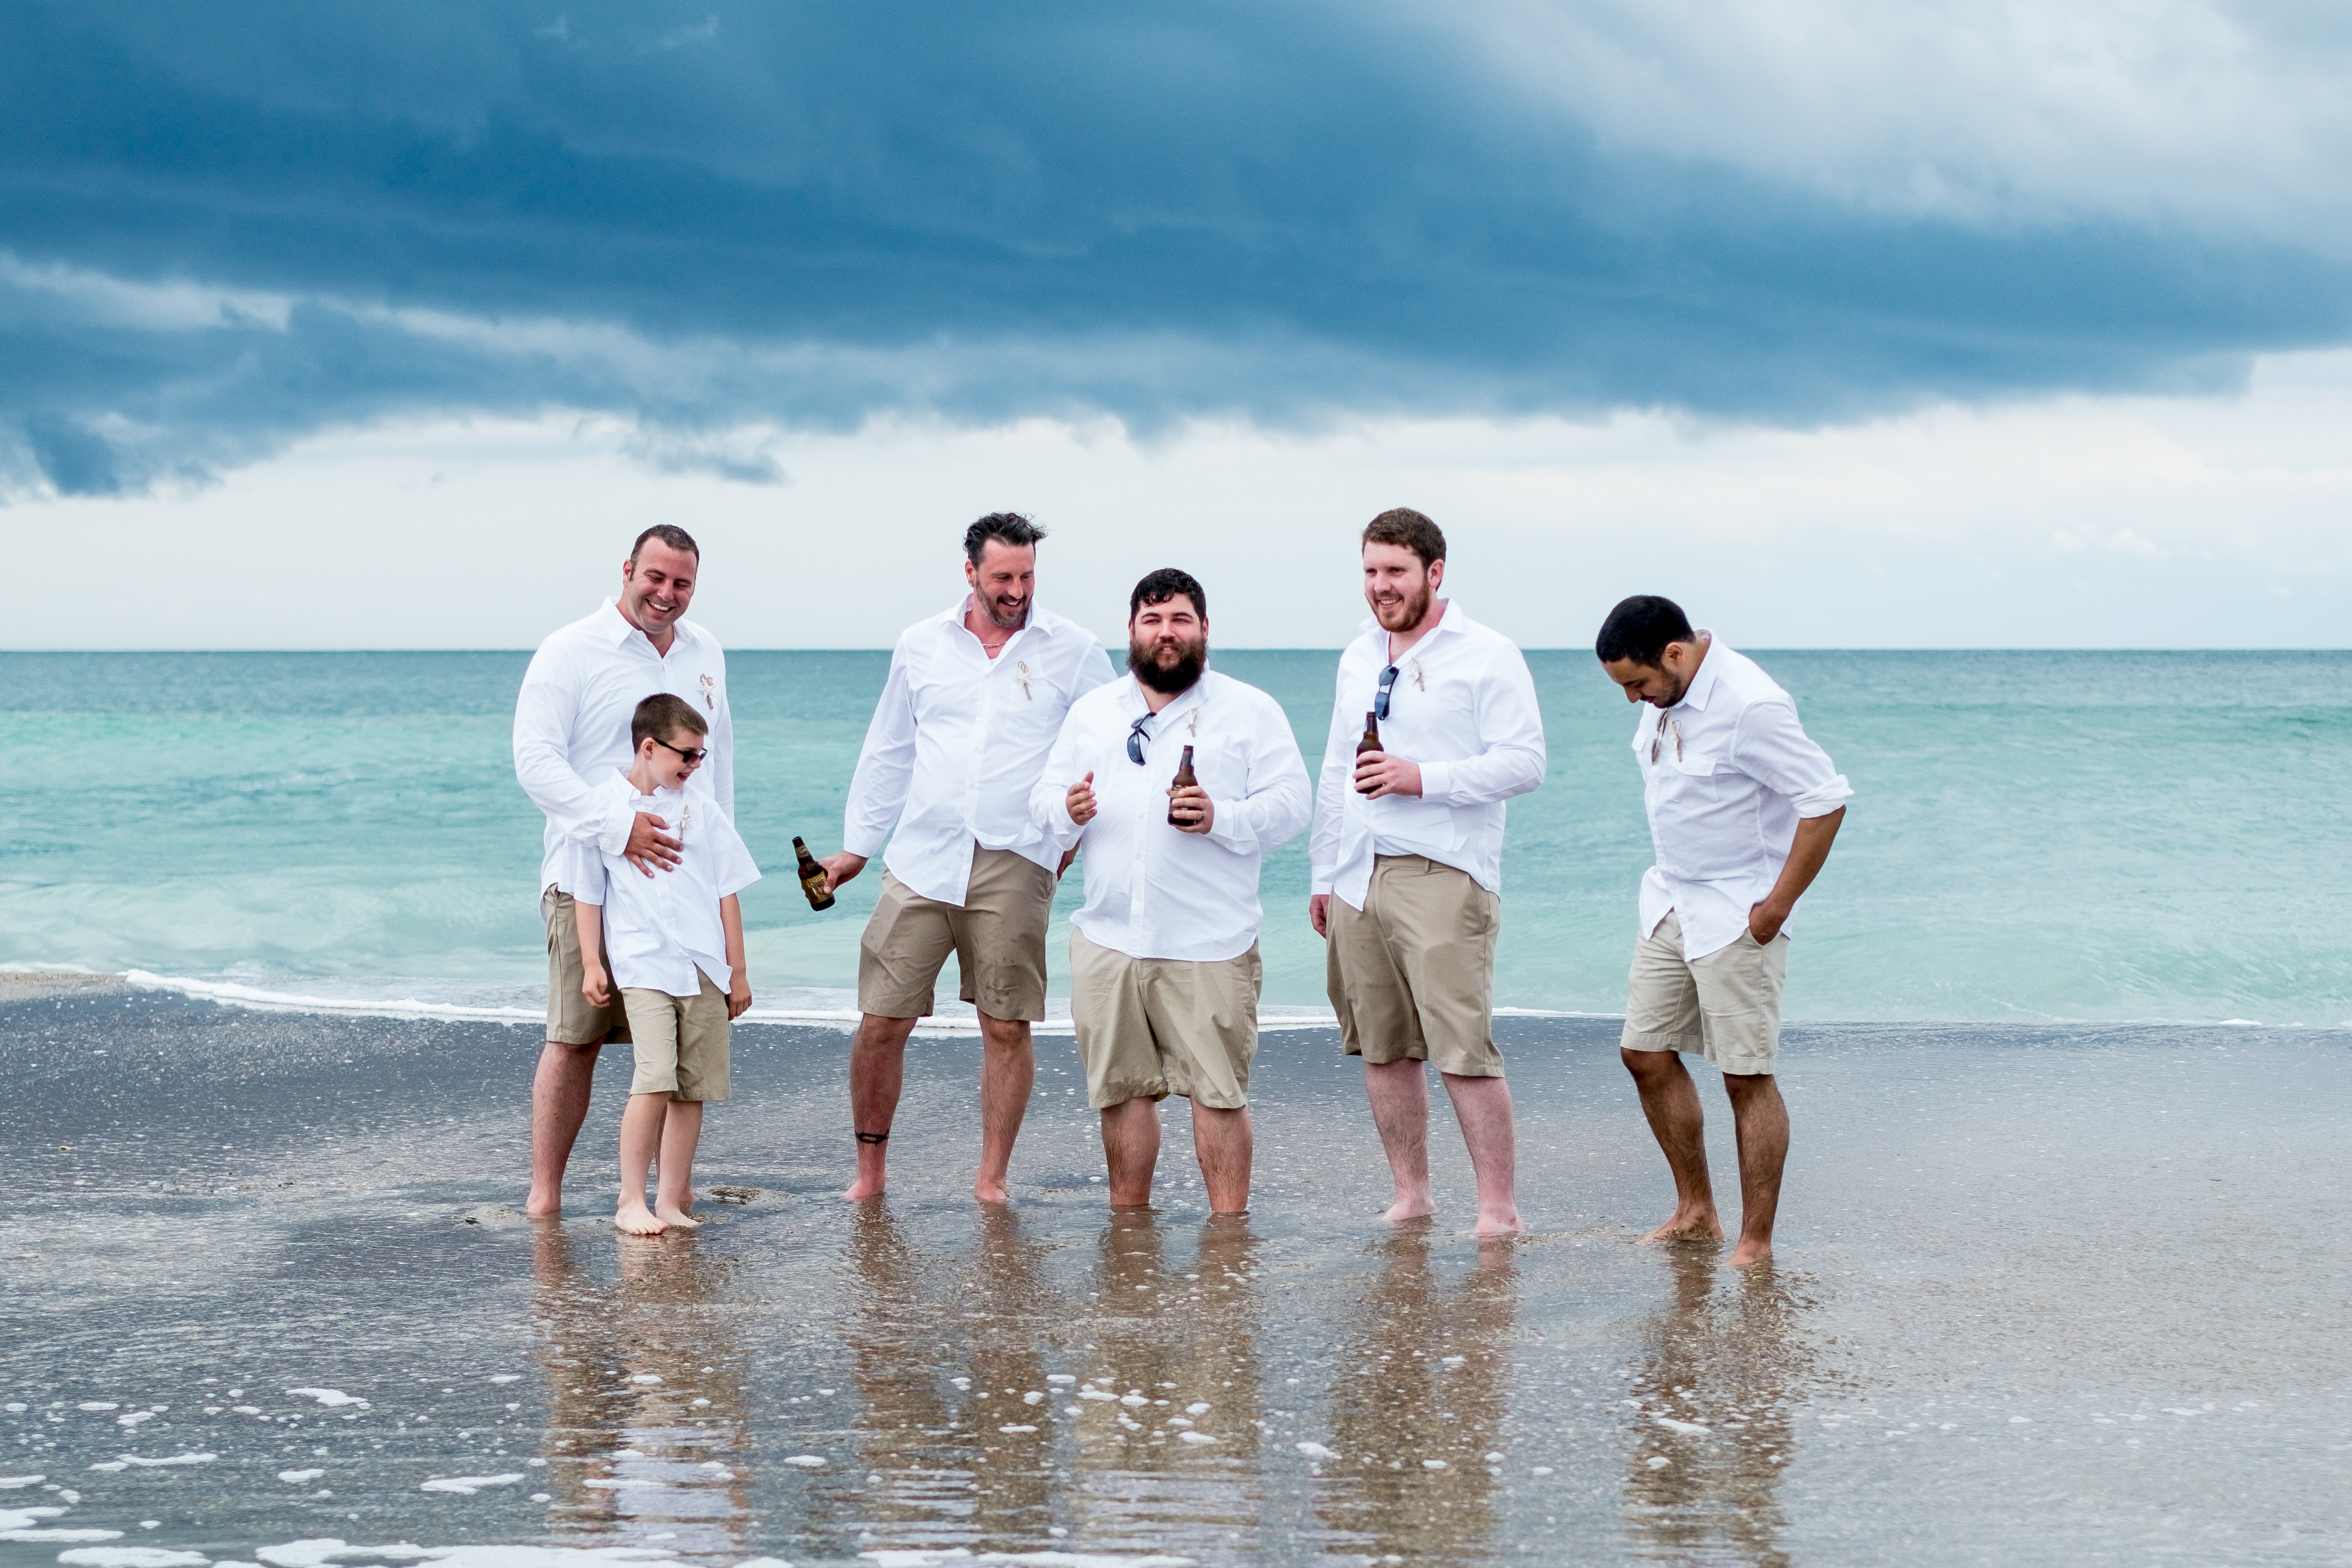 Sample Photos From The Wedding Of Kate Congleton And Aaron Norris On Beach At Emerald Island Nc More Samples Available